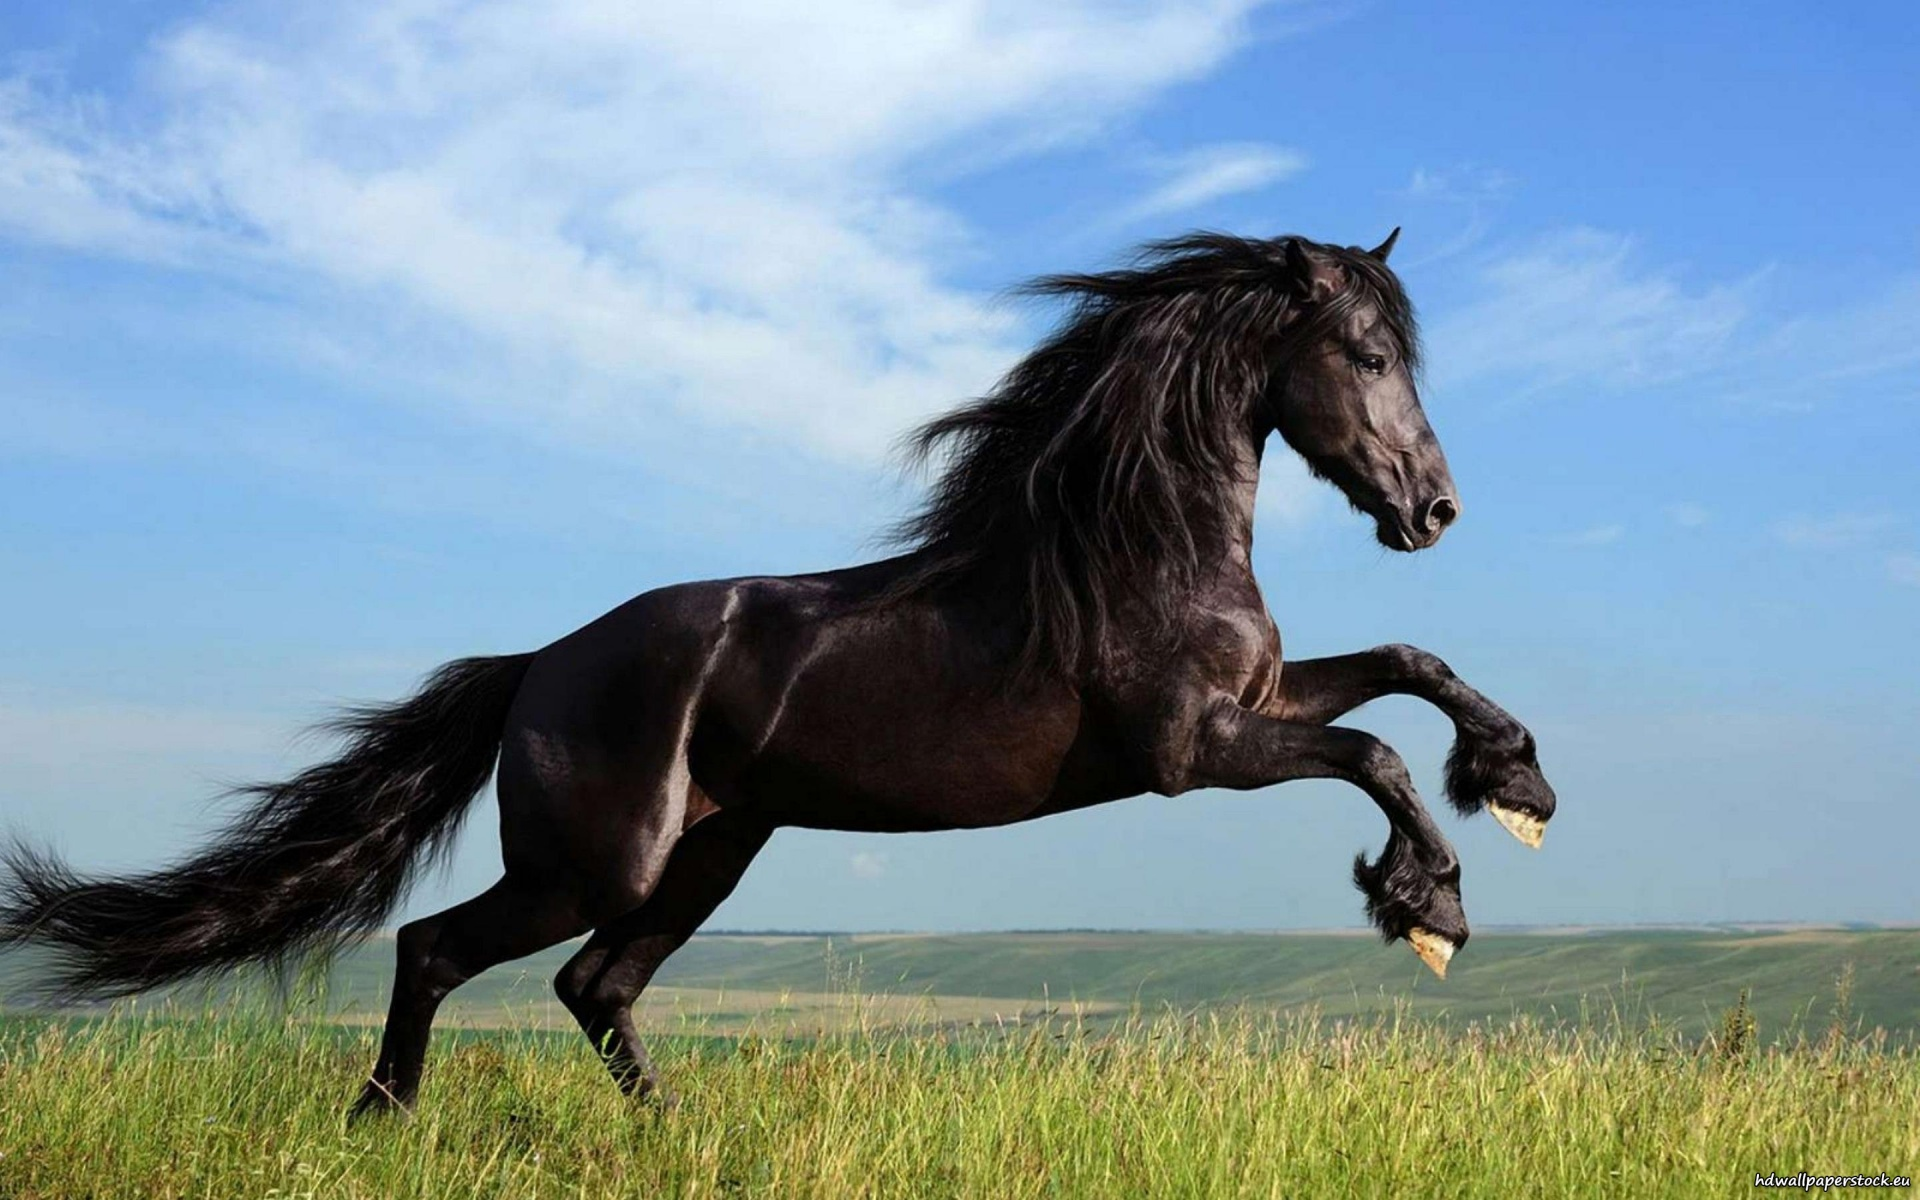 Jumping Black Horse Hd Wallpapers Cool Desktop Background Images Widescreen